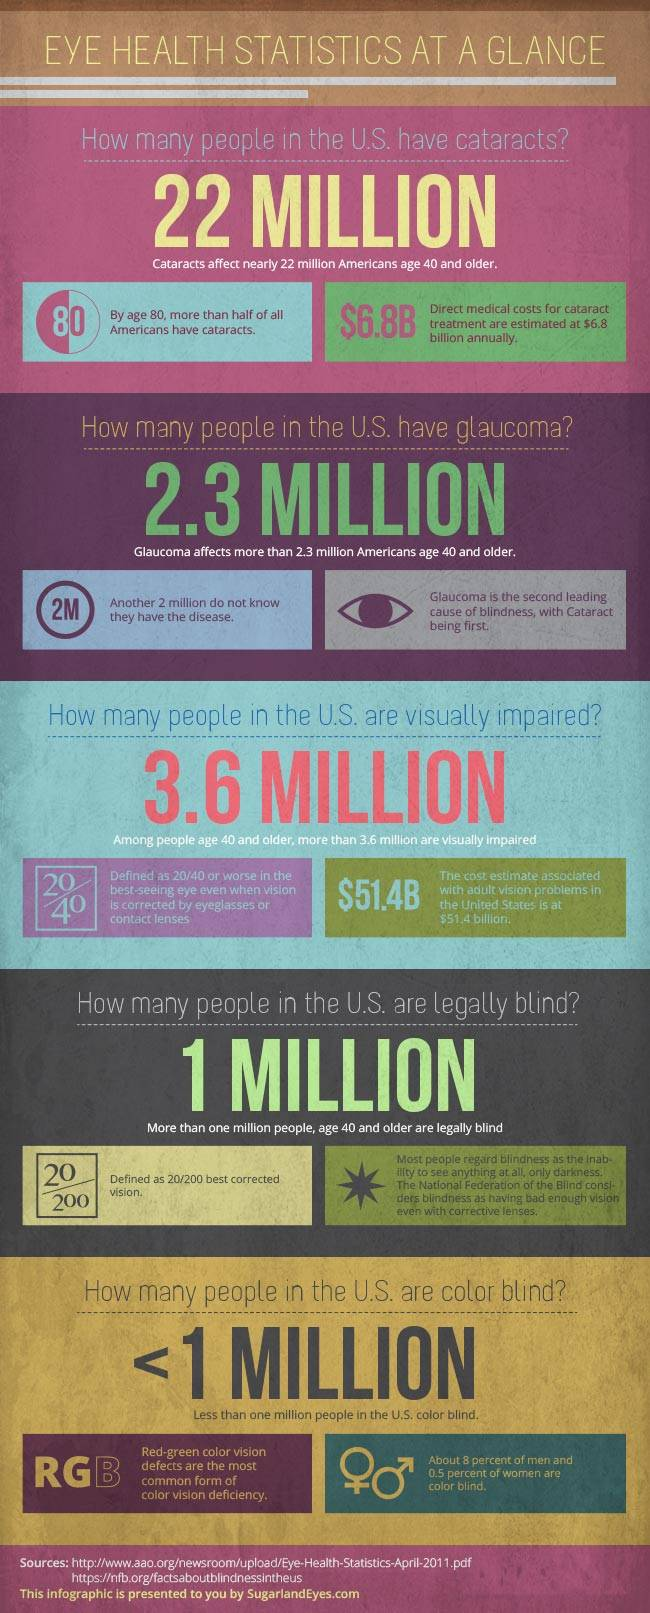 Eye Statistics At A Glance infographic